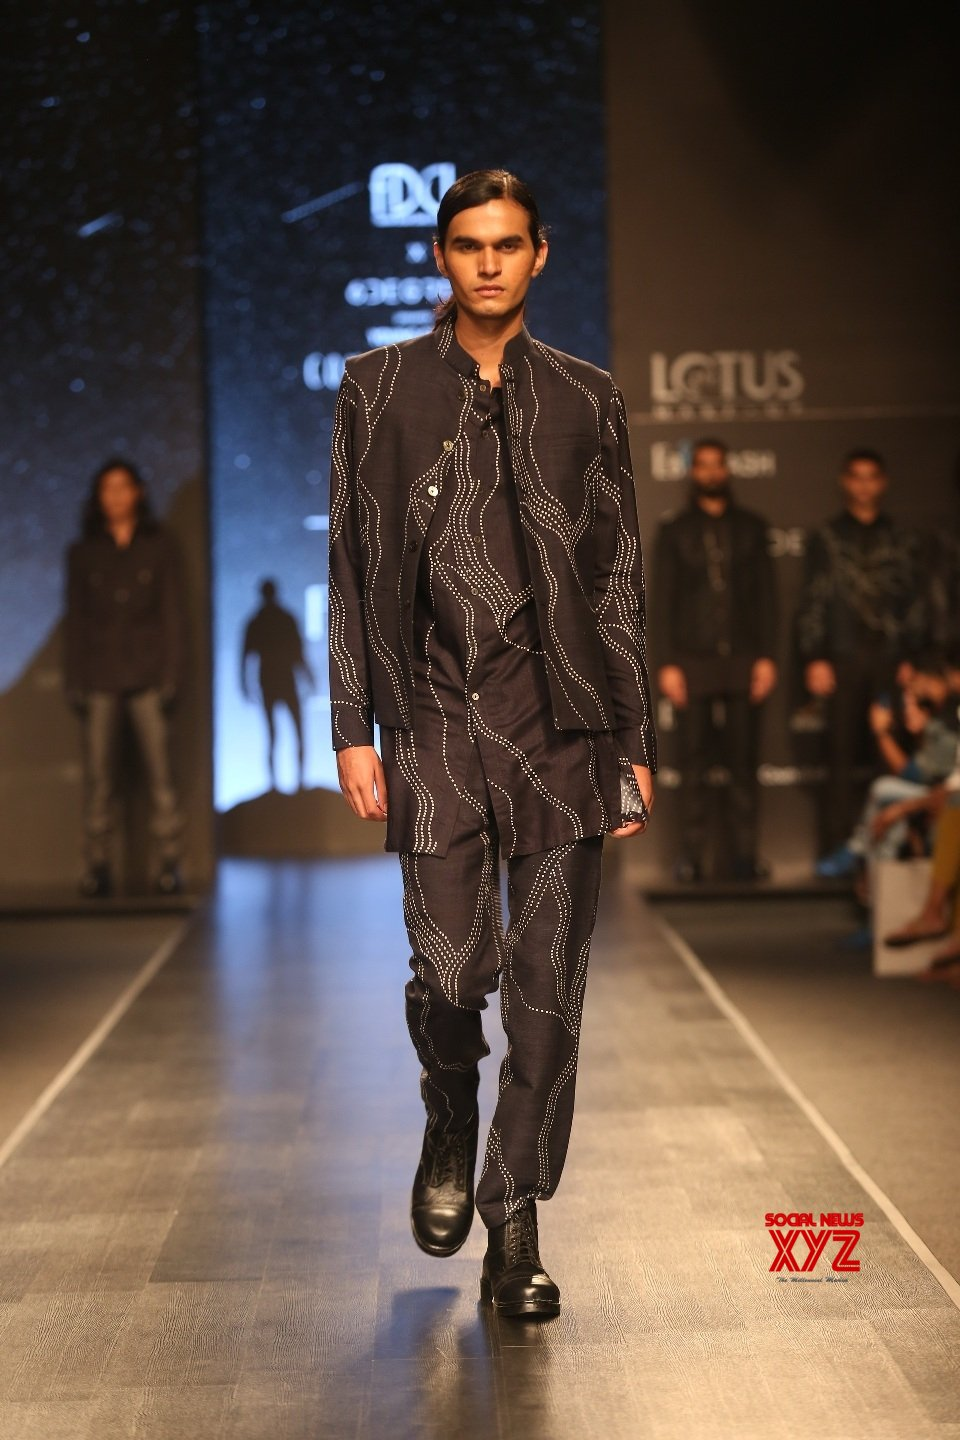 New Delhi: Lotus Make - up India Fashion Week - Day 4 - Countrymade's collection showcased (Batch - 2) #Gallery